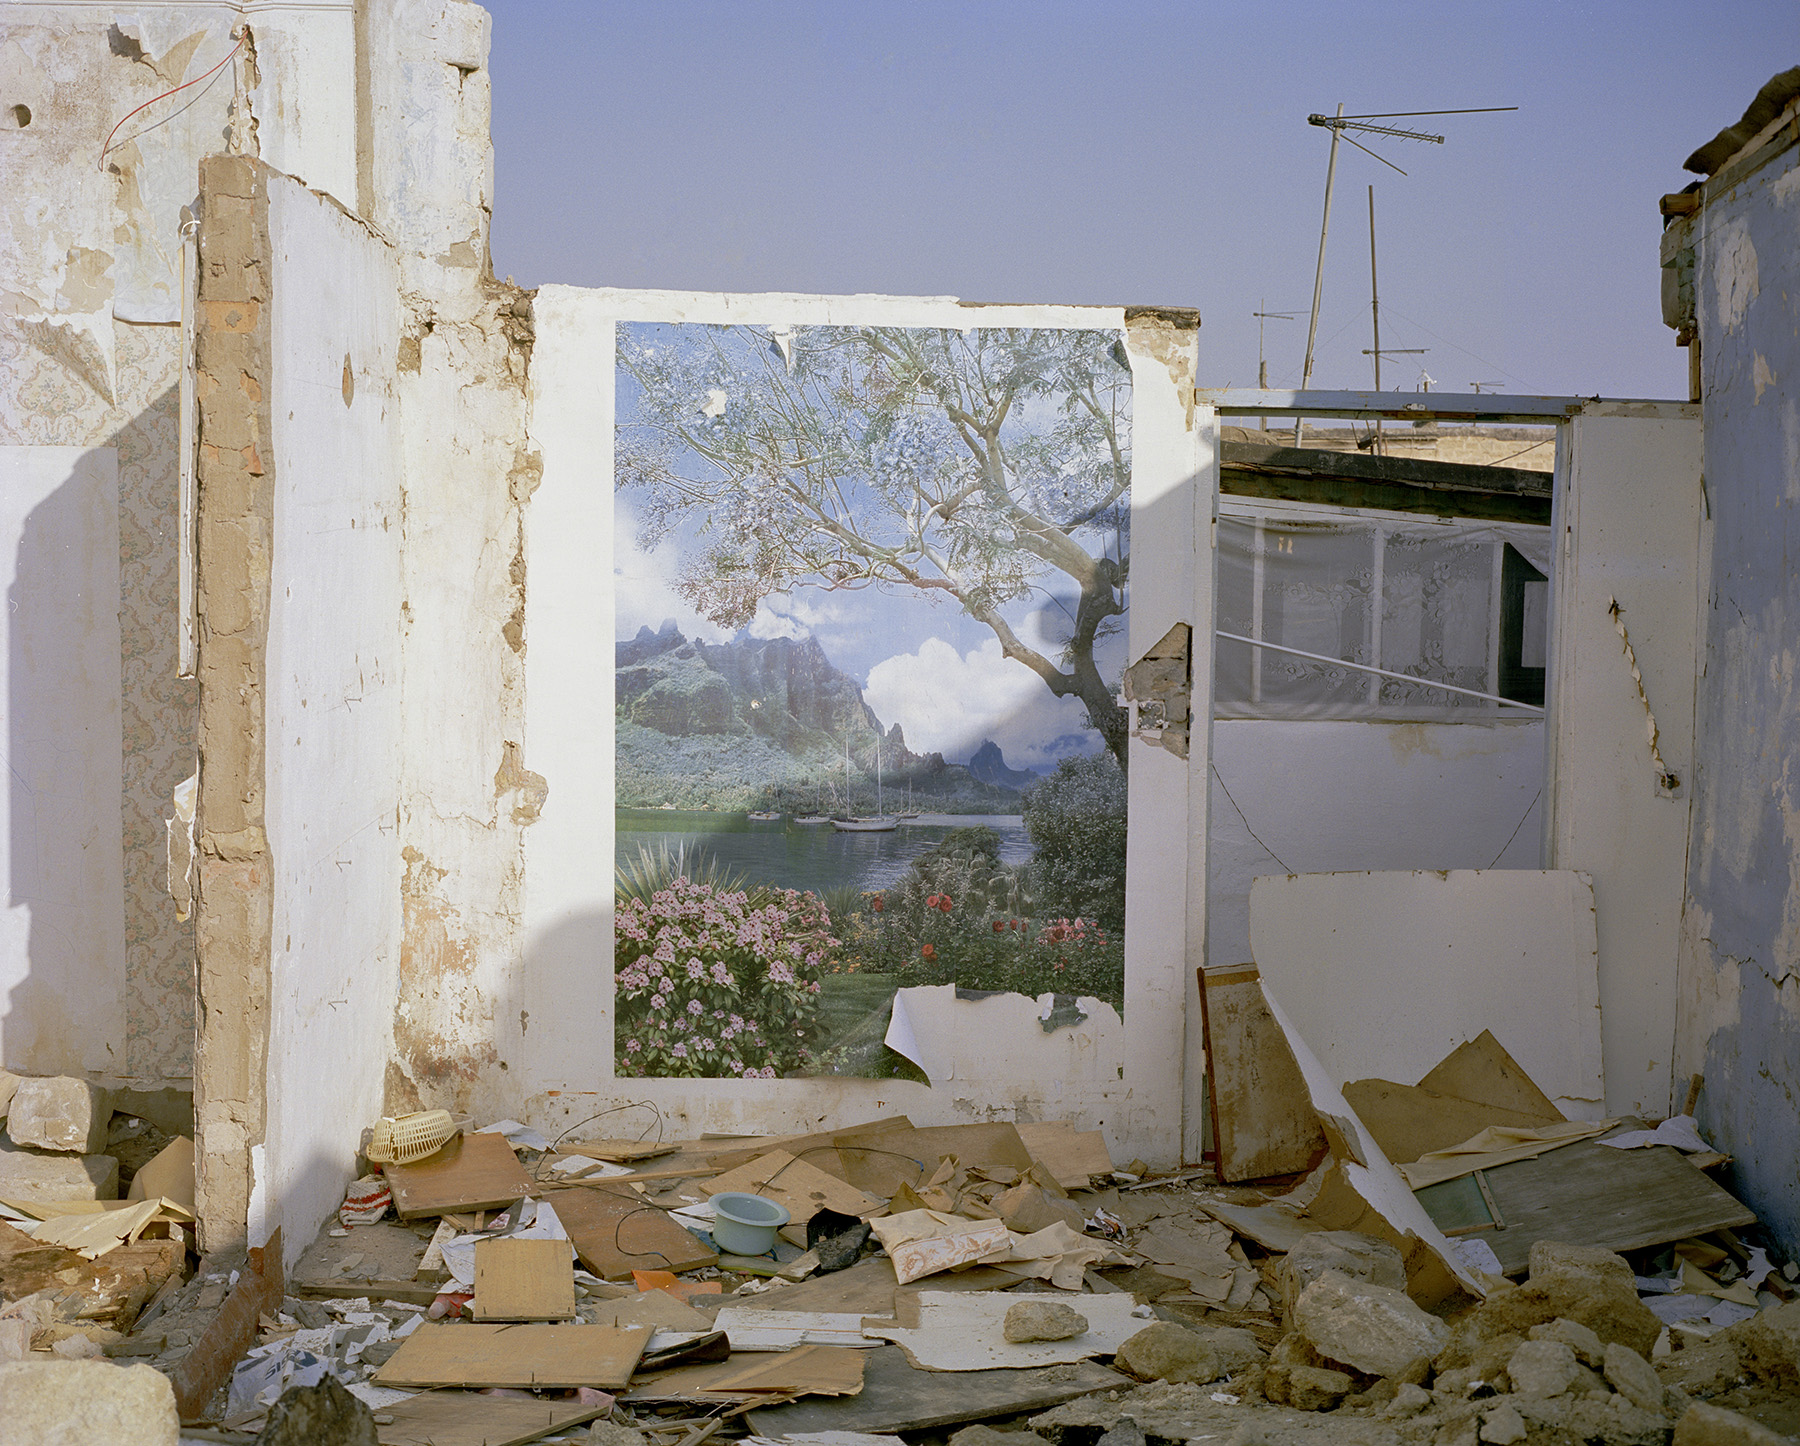 2014: A poster depicting a scenic natural scene still hangs on the wall of a demolished home. – Sovietski, central Baku.